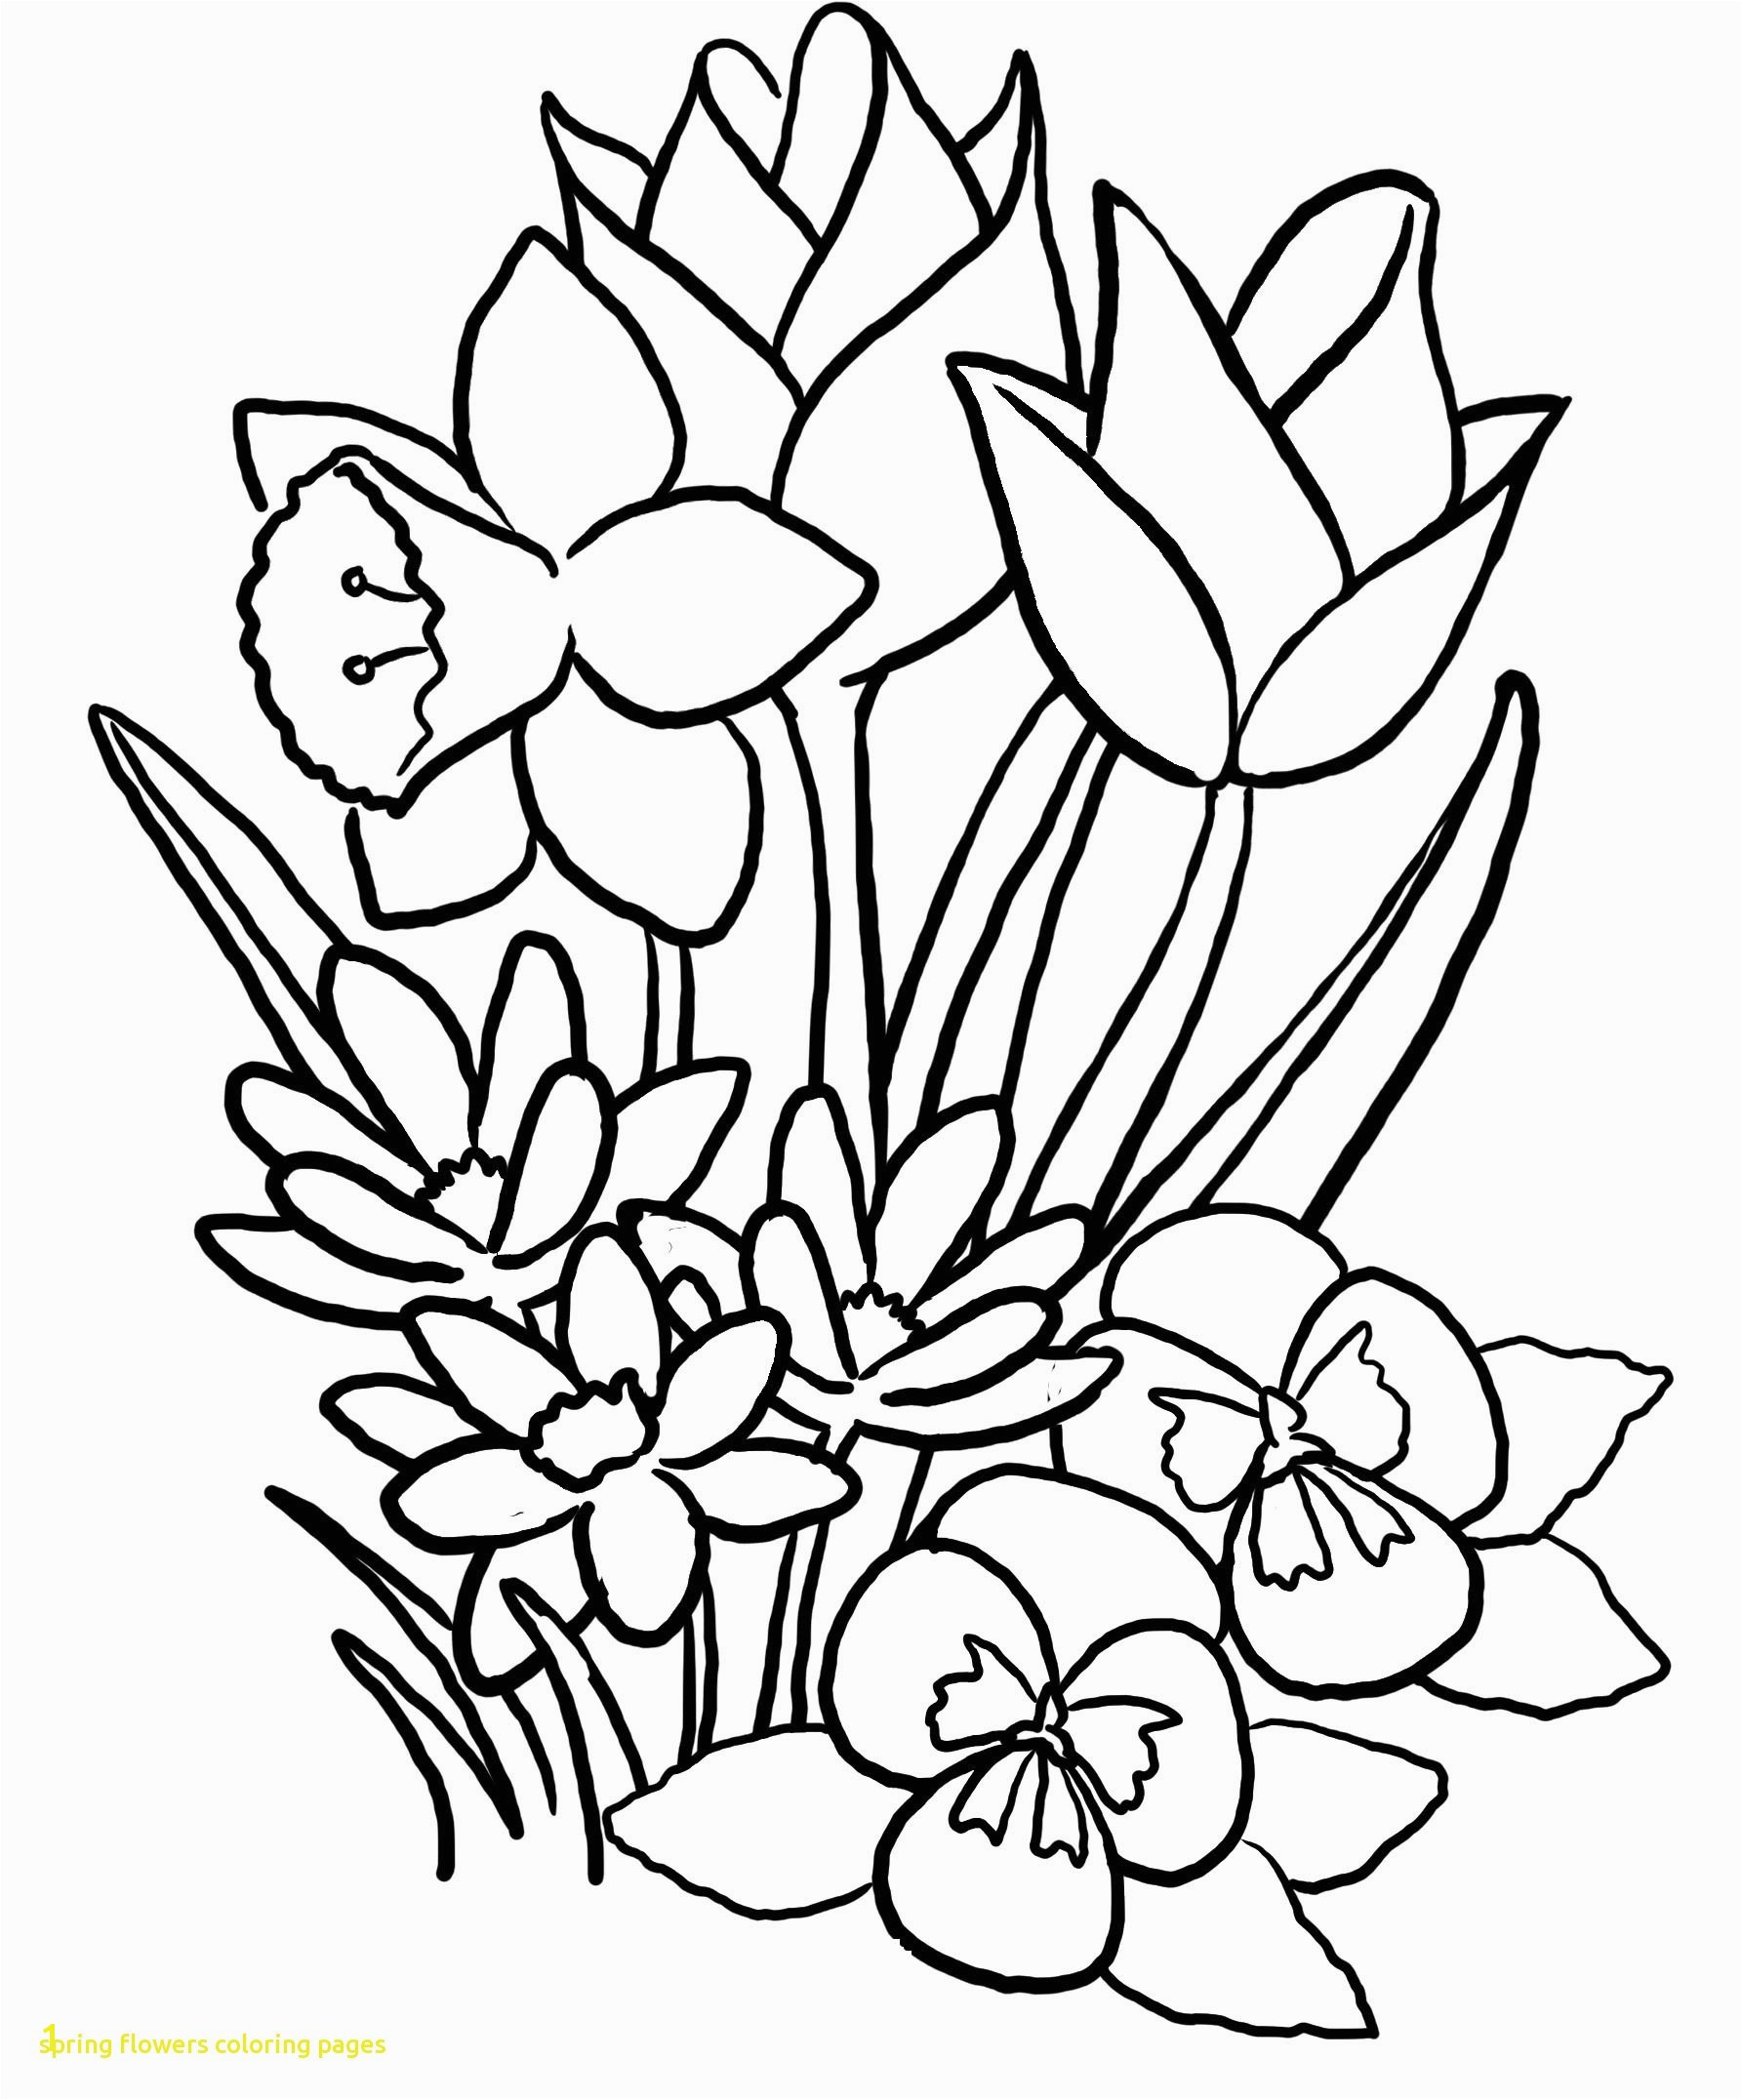 Labeled big spring flower coloring pages free free printable spring flower coloring pages free spring flower coloring pages free spring flower coloring